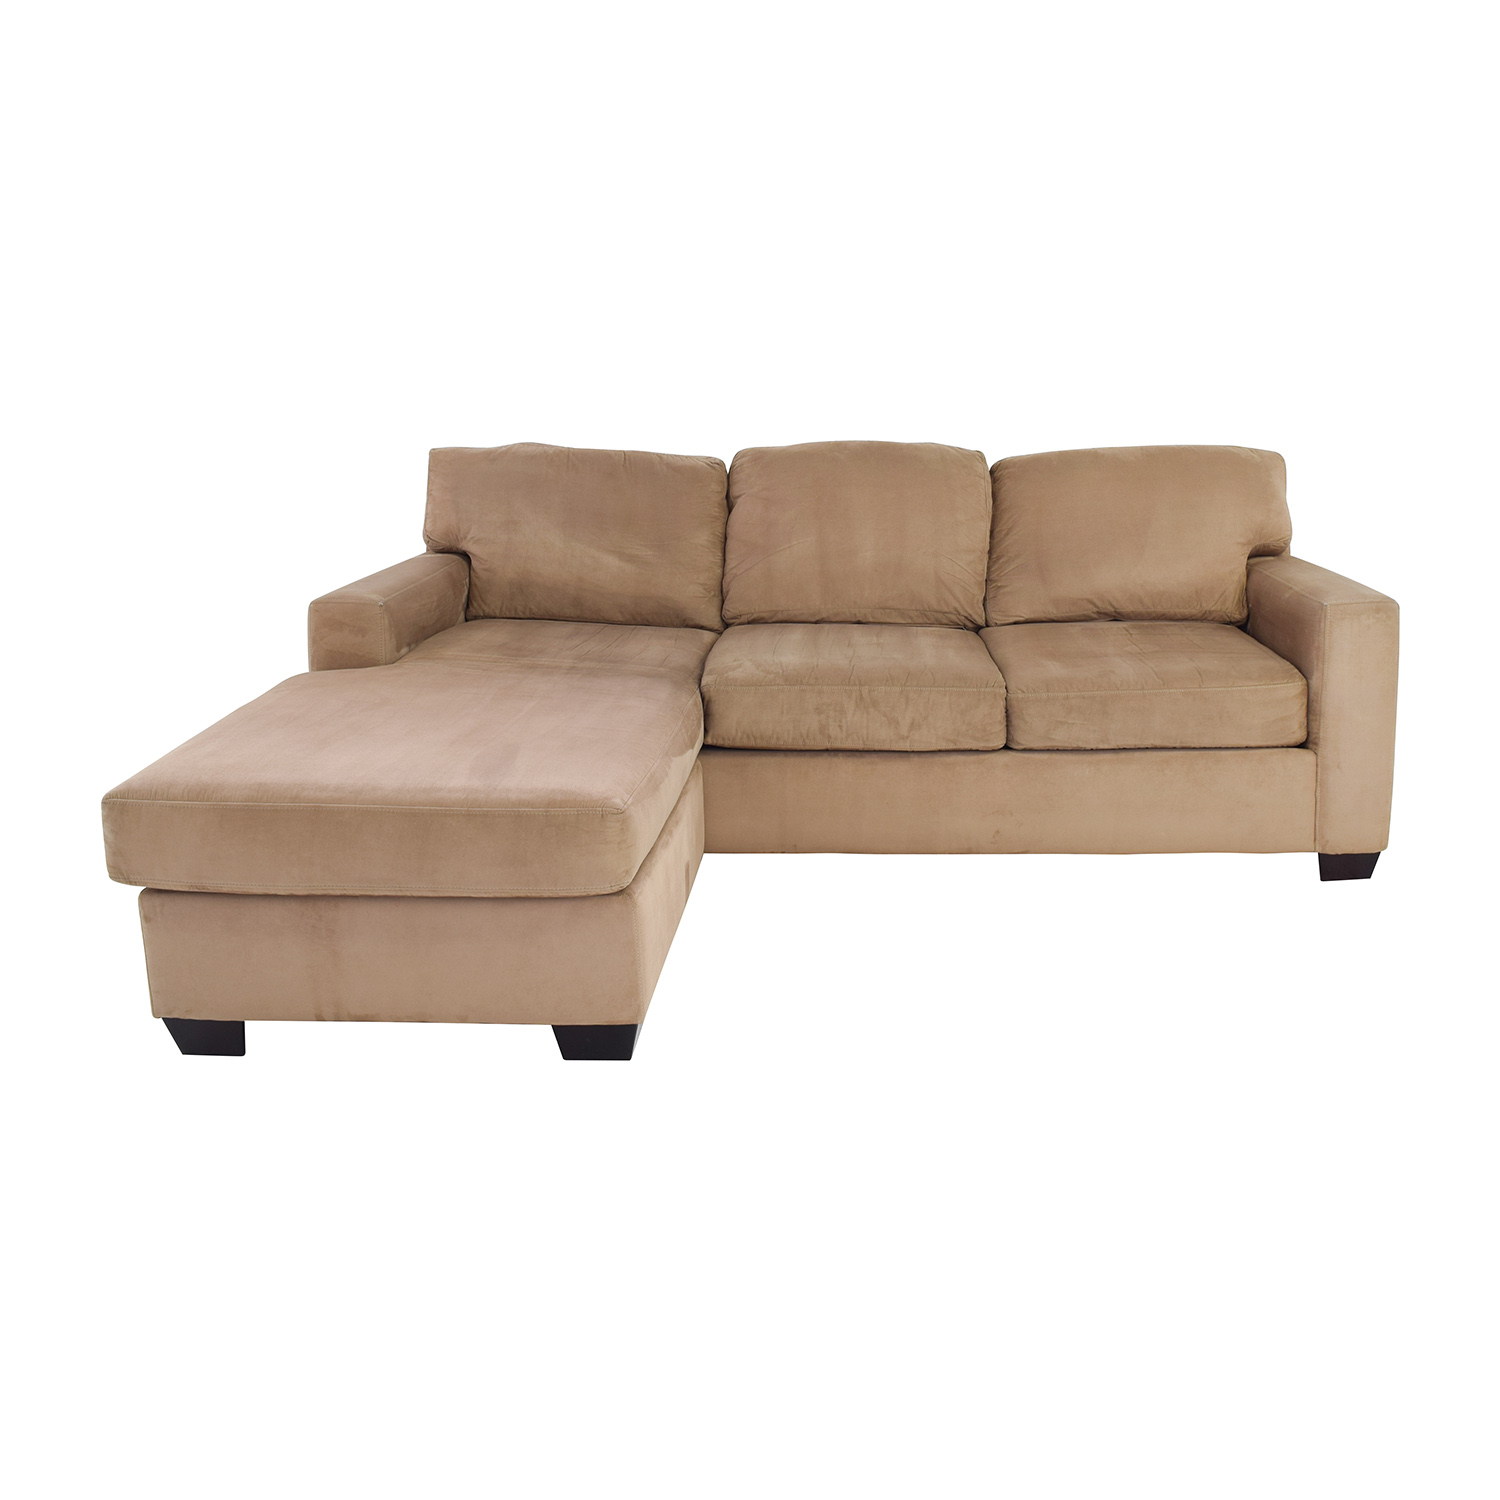 Max Home Max Home Tan Sectional Chaise Sofa nj